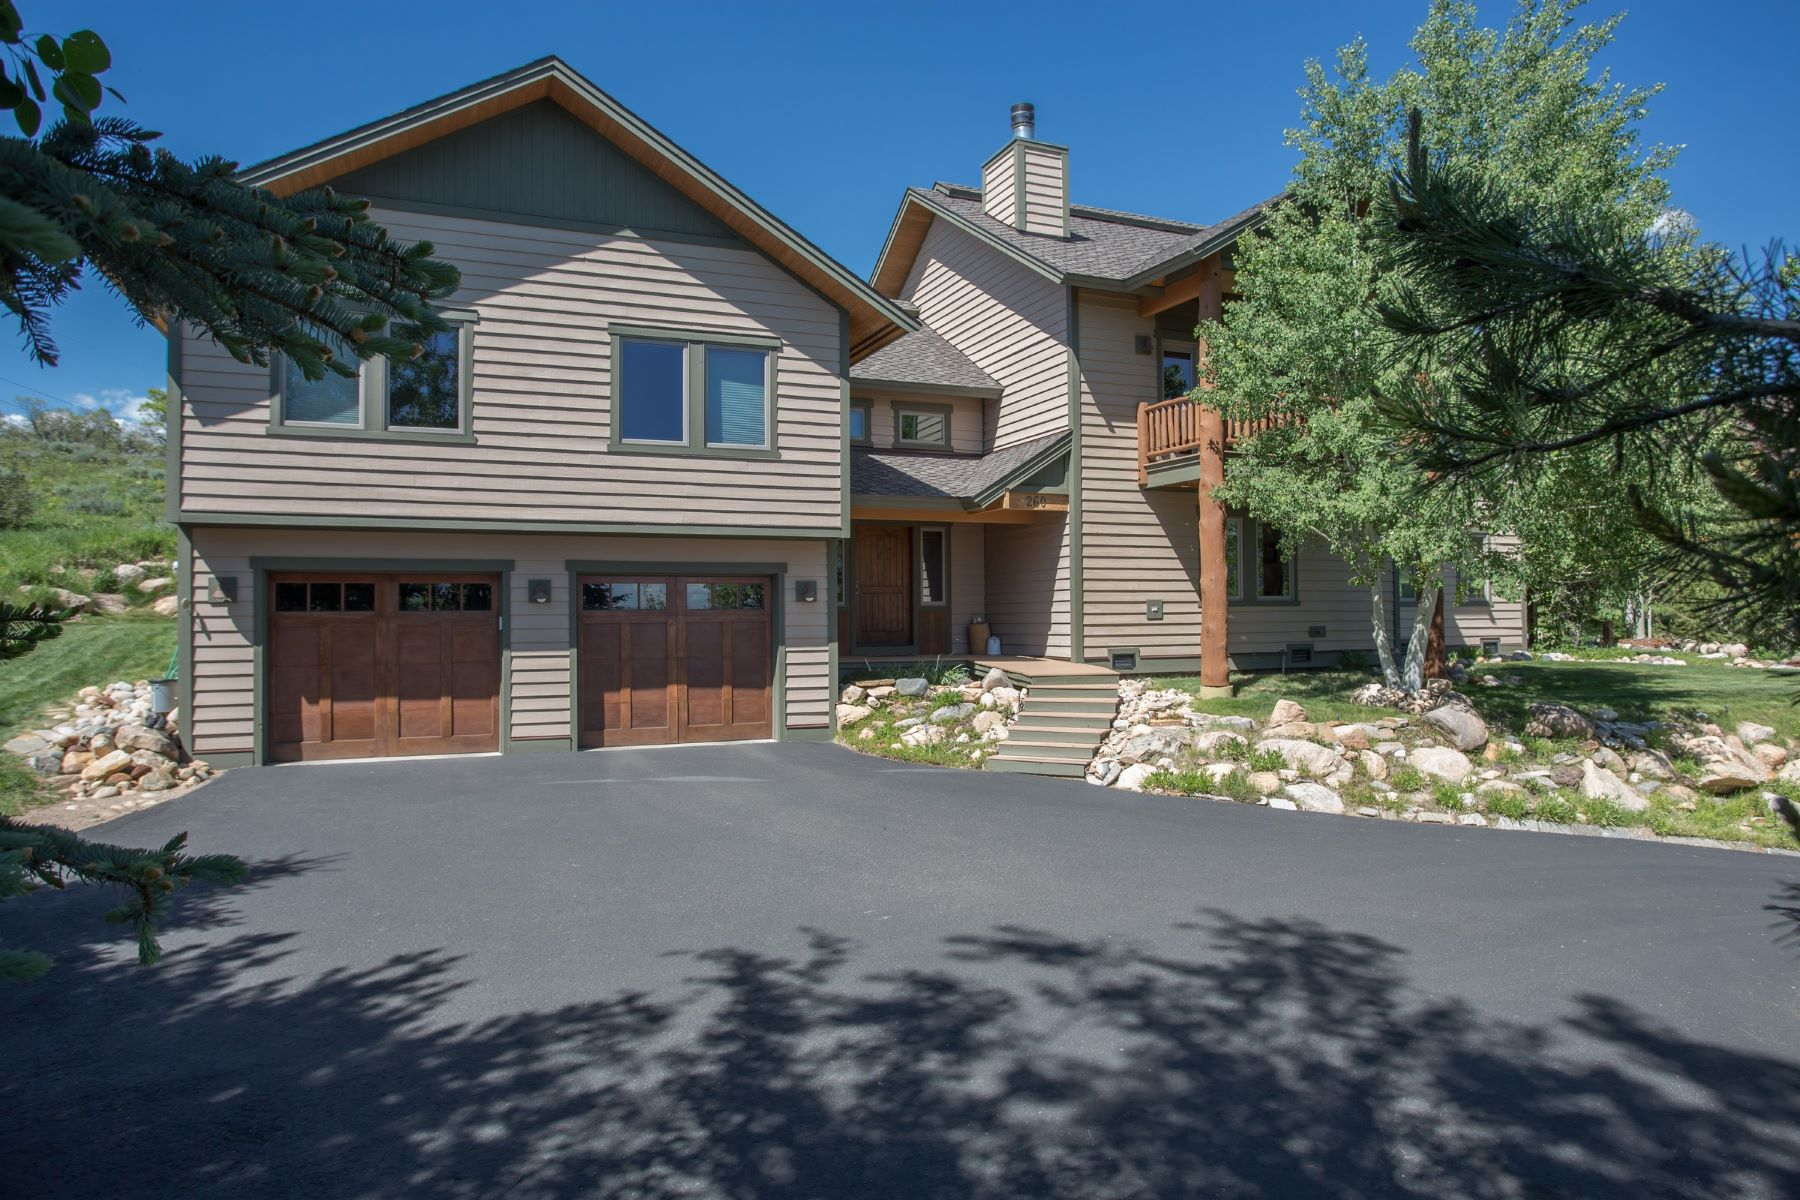 Single Family Home for Rent at 5 Bedroom Luxury Home in Fish Creek Falls 260 Storm Peak Ct Steamboat Springs, Colorado 80487 United States